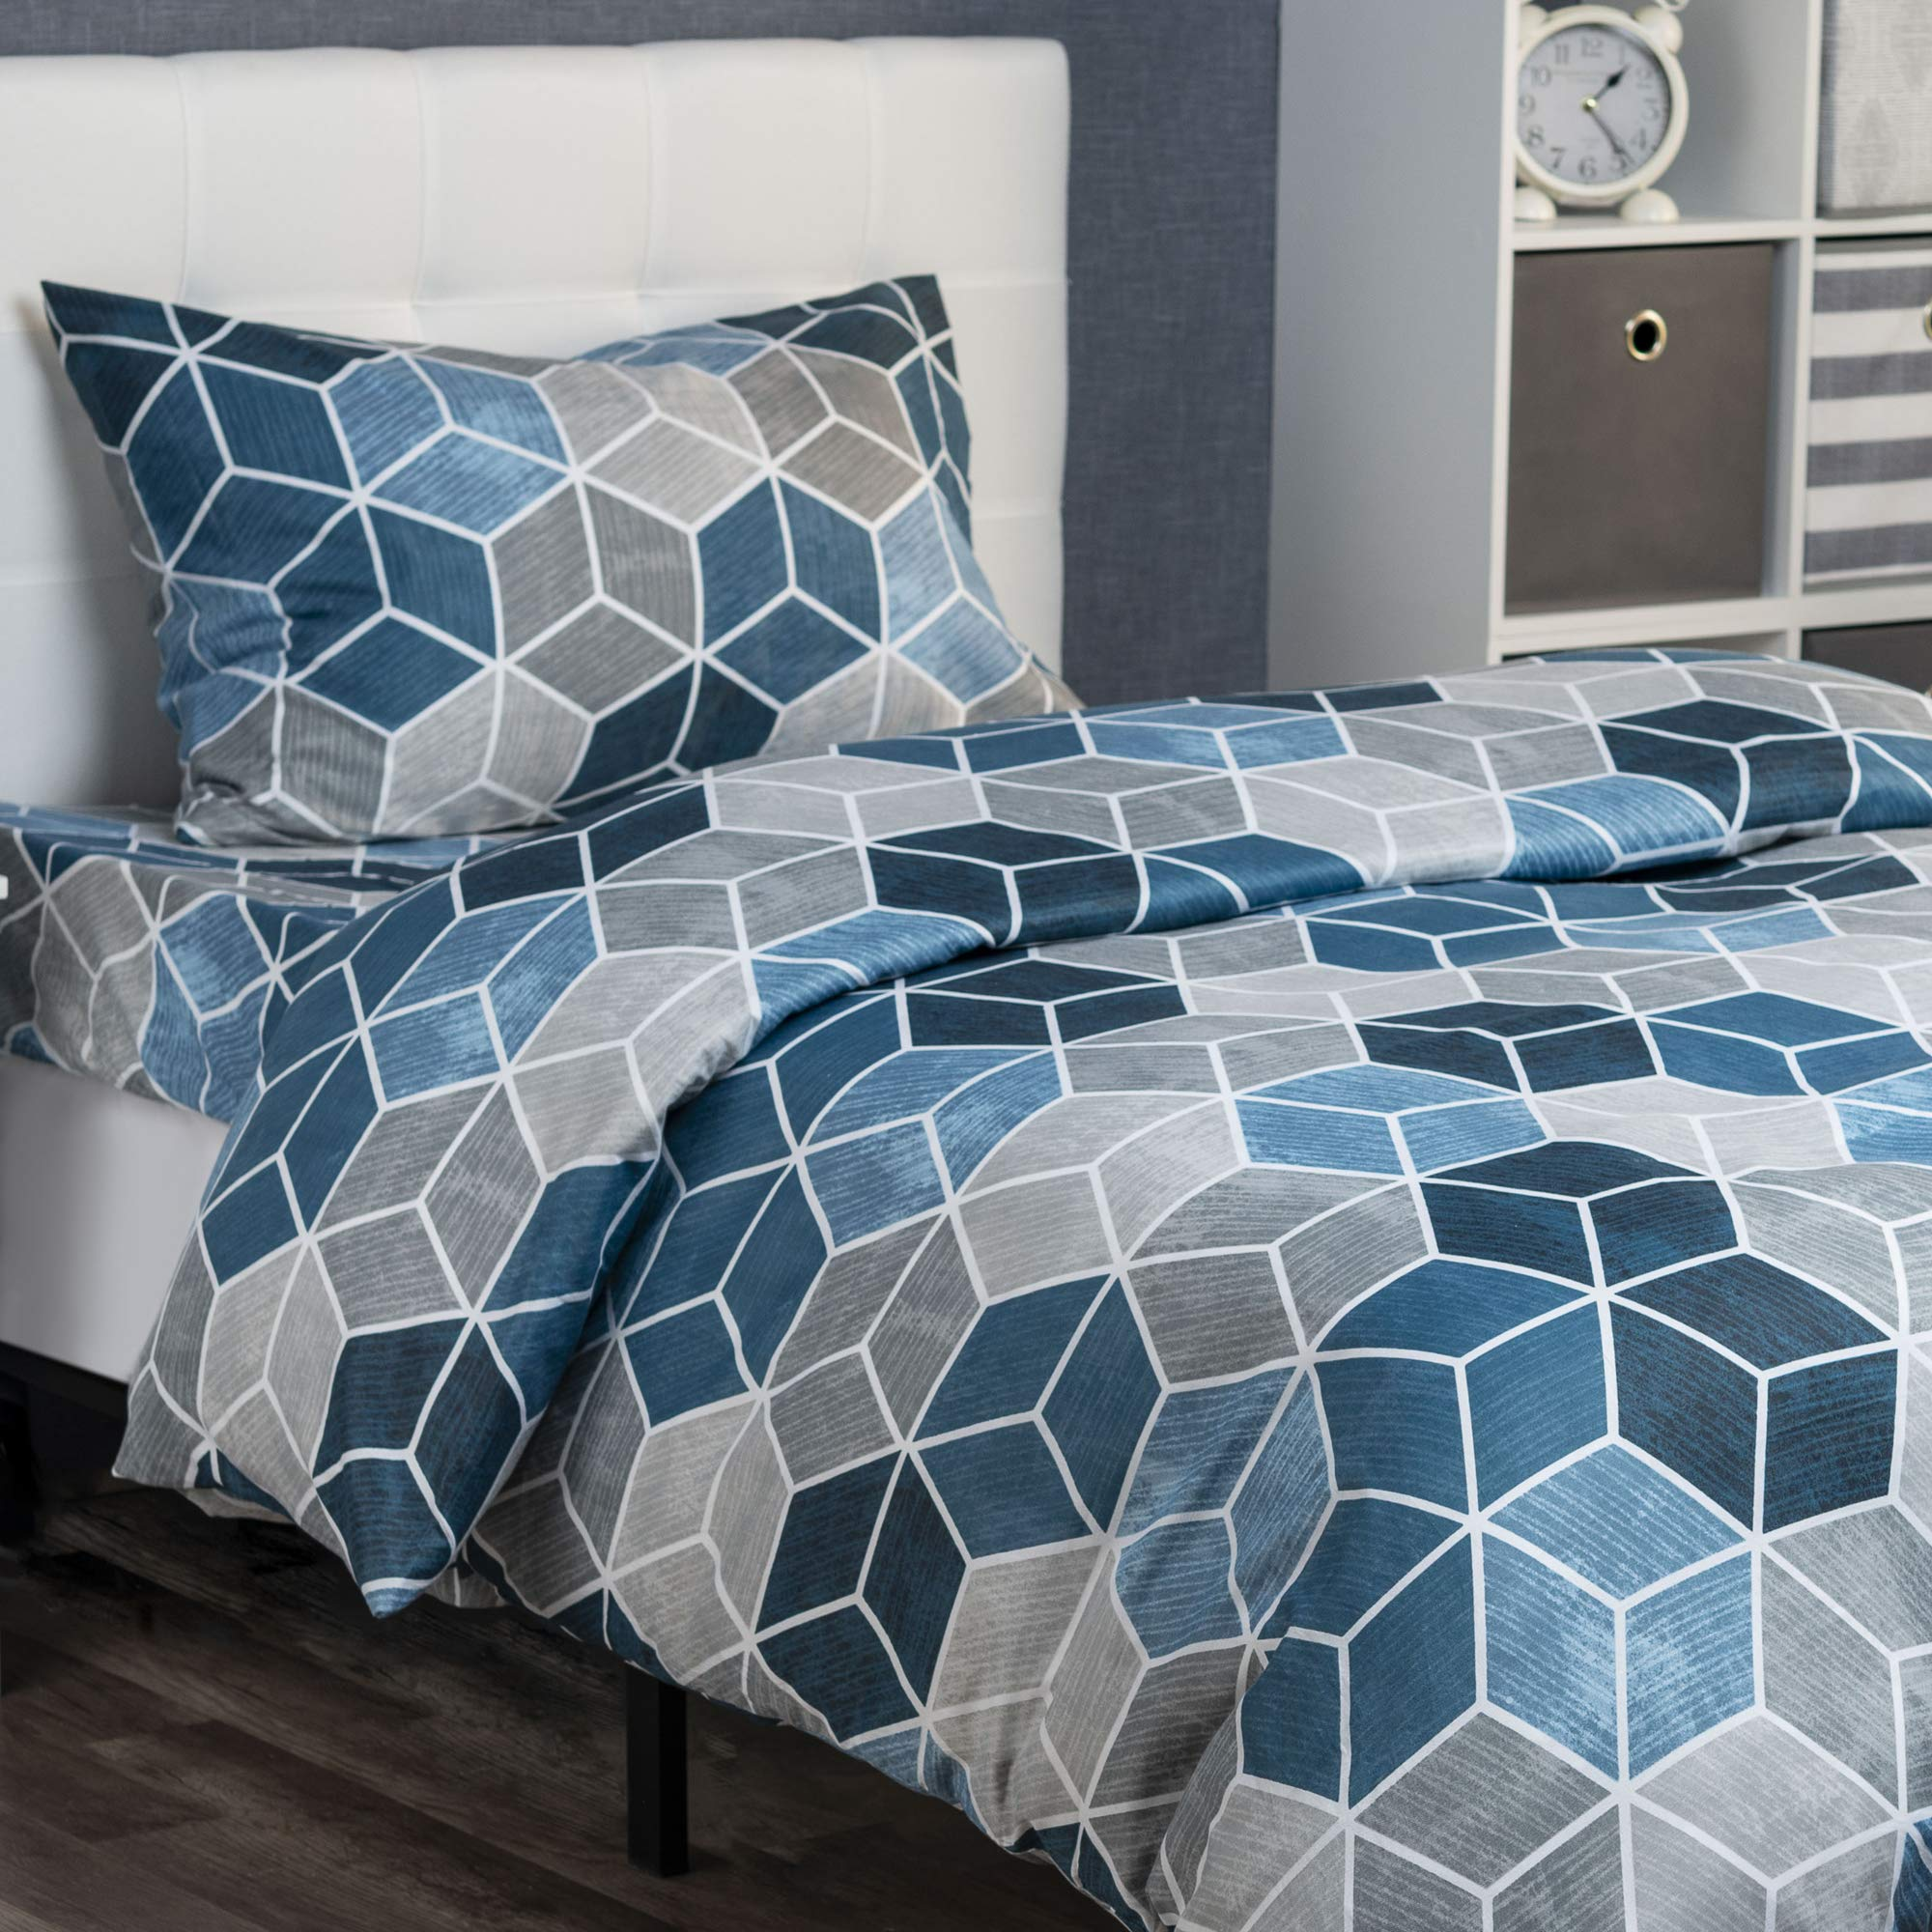 XLNT Premium 1 Set 3 Pc Duvet Cover Set Luxury Ultra Soft Twin Size 39 inch Textured Geo Blue Designed Bed Sheets Cotton Blend, Machine Washable, Fade Resistant, Great for Kids or Guest Room by XLNT